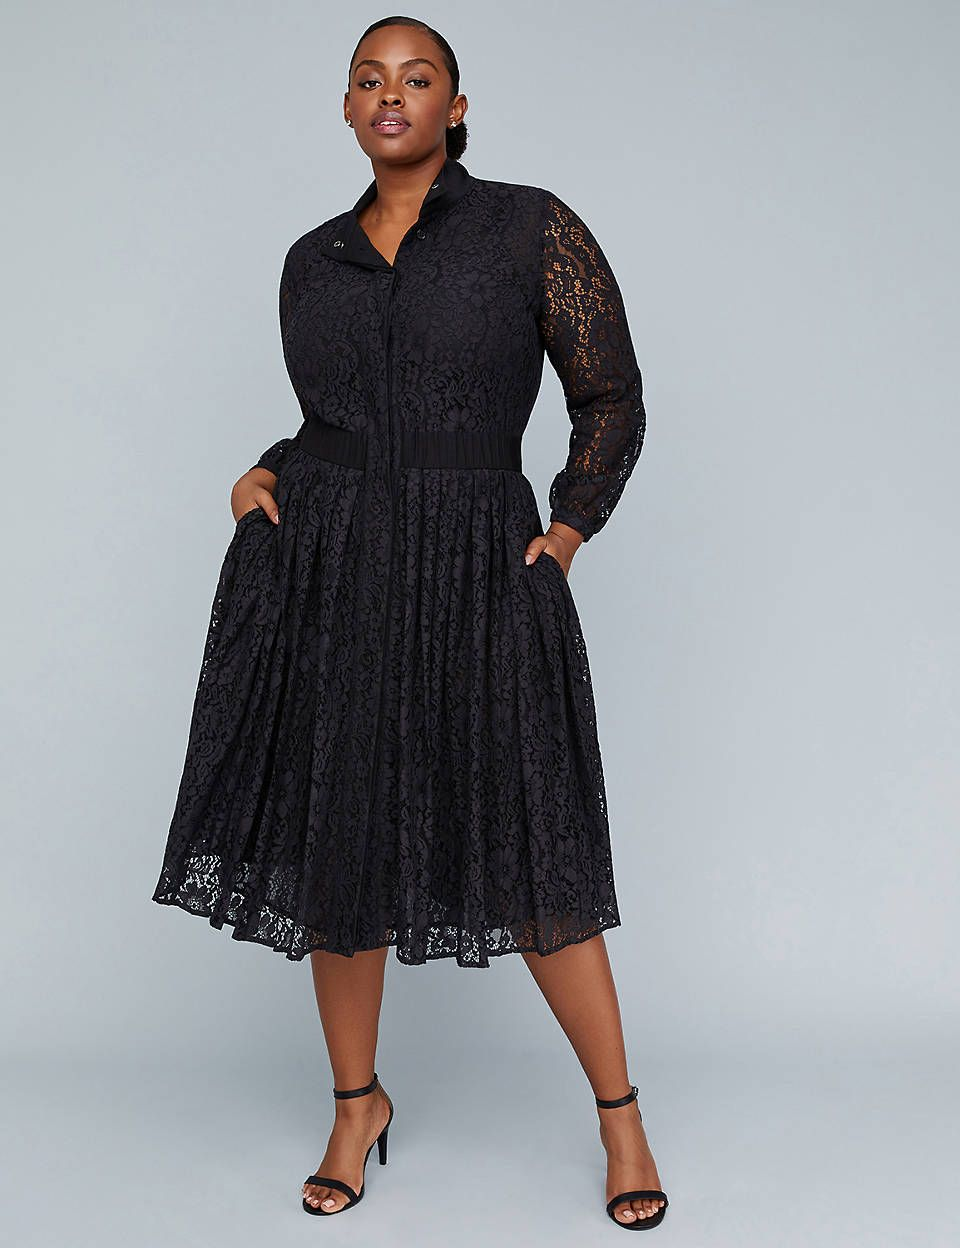 7b13a429a196 Girl With Curves Pleated Lace Dress | Lane Bryant | IT'S ALL ABOUT ...